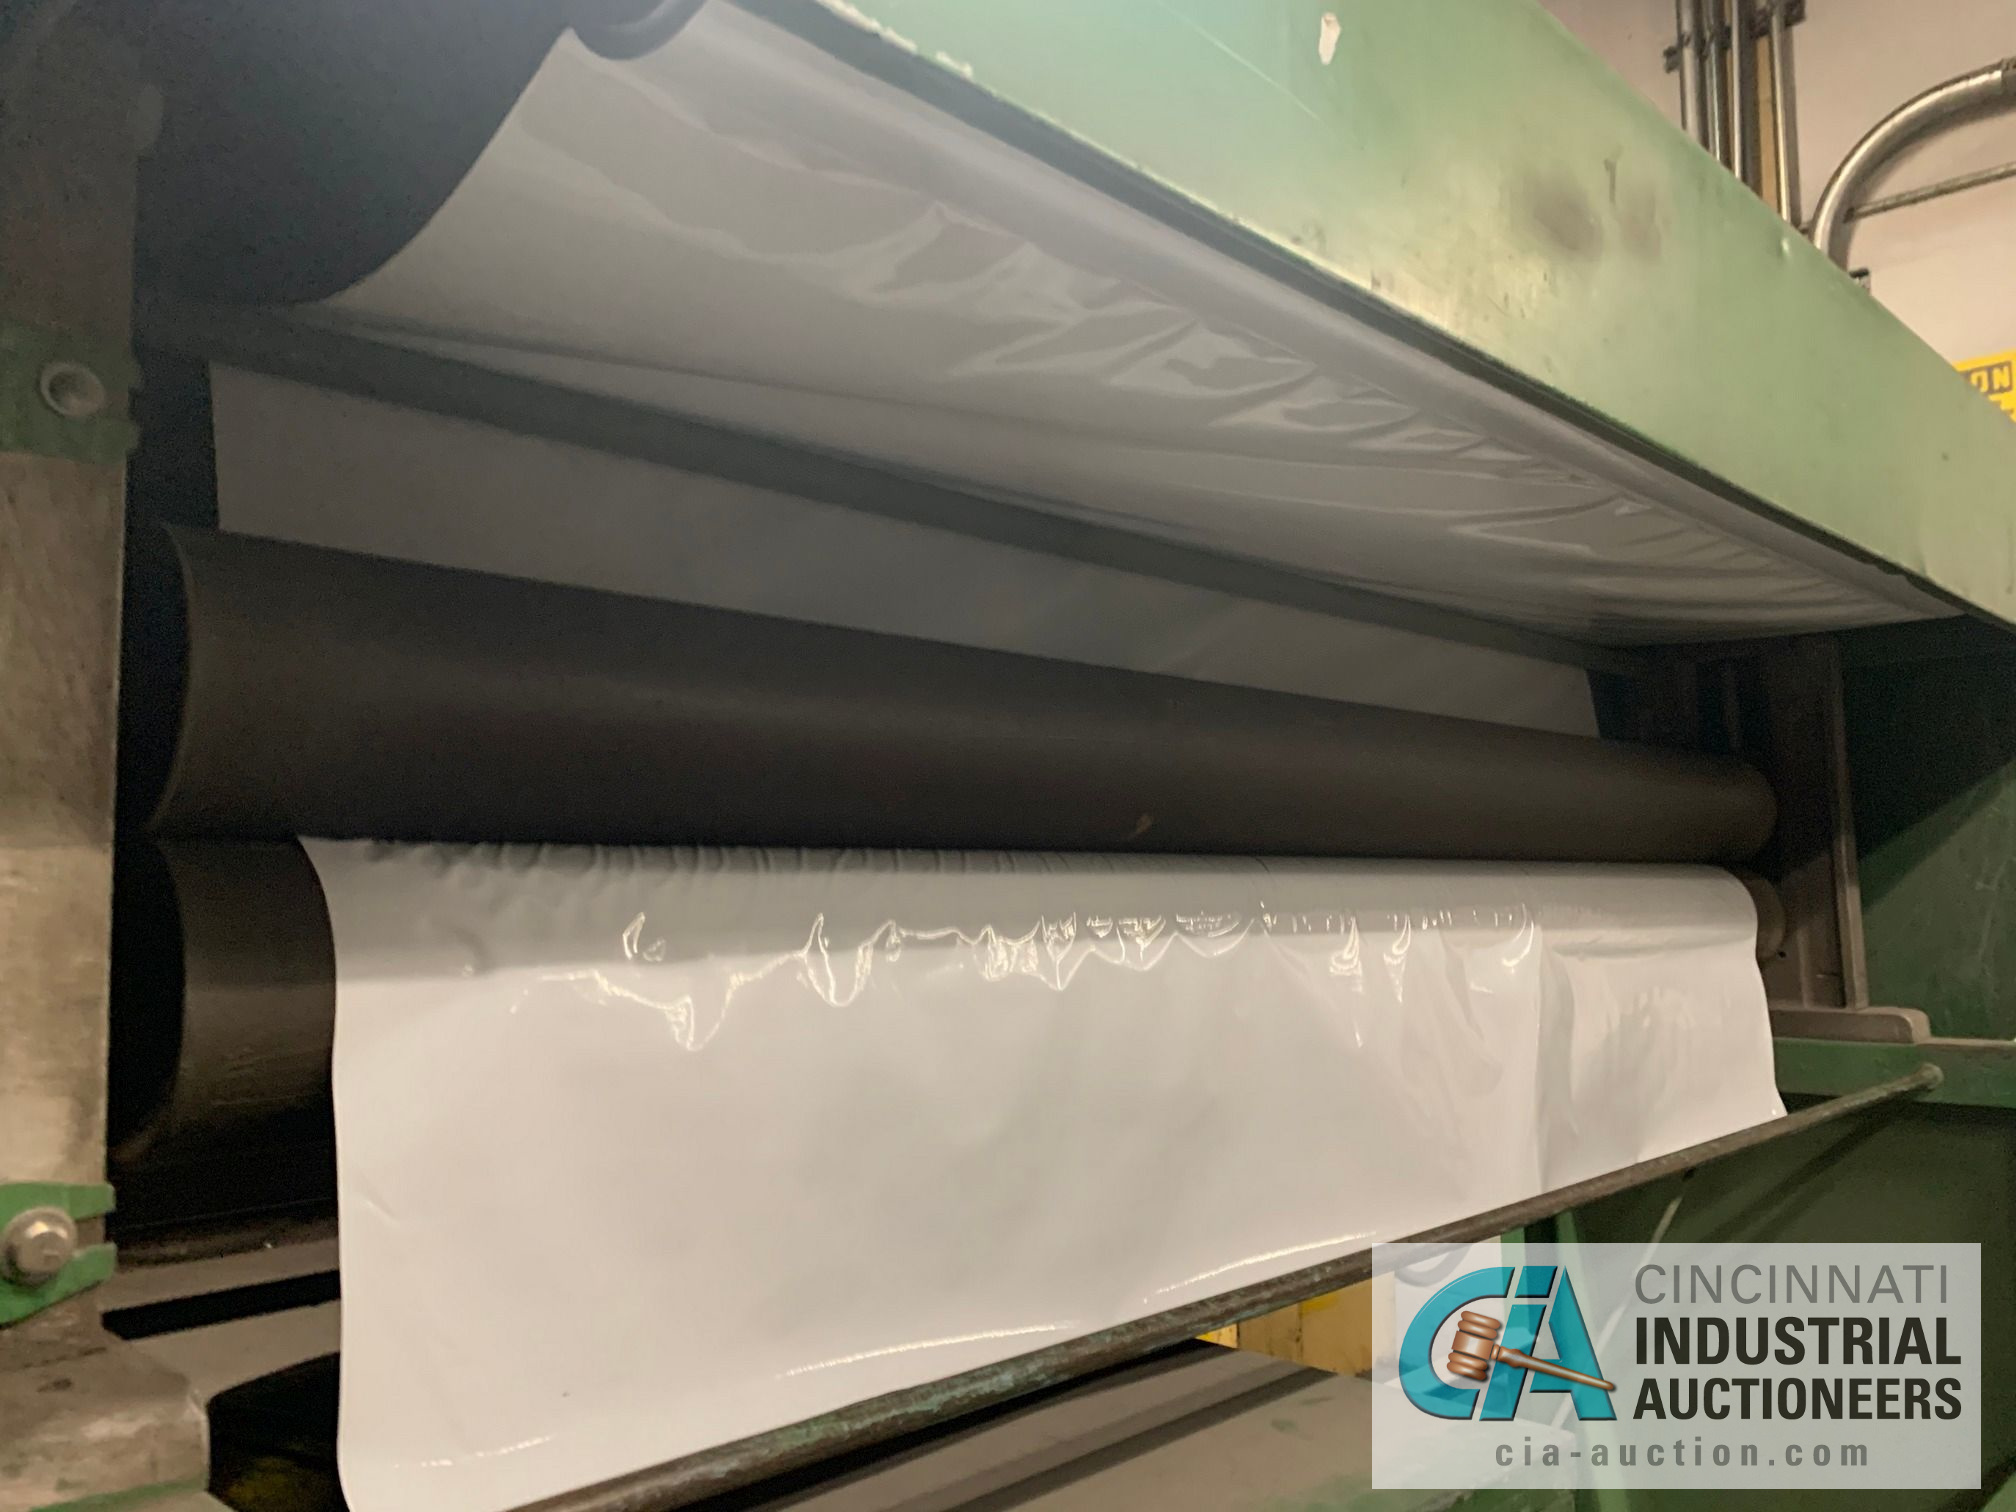 """48"""" WIDE POWER POLYMASK APPLICATOR ROLL - Image 3 of 4"""